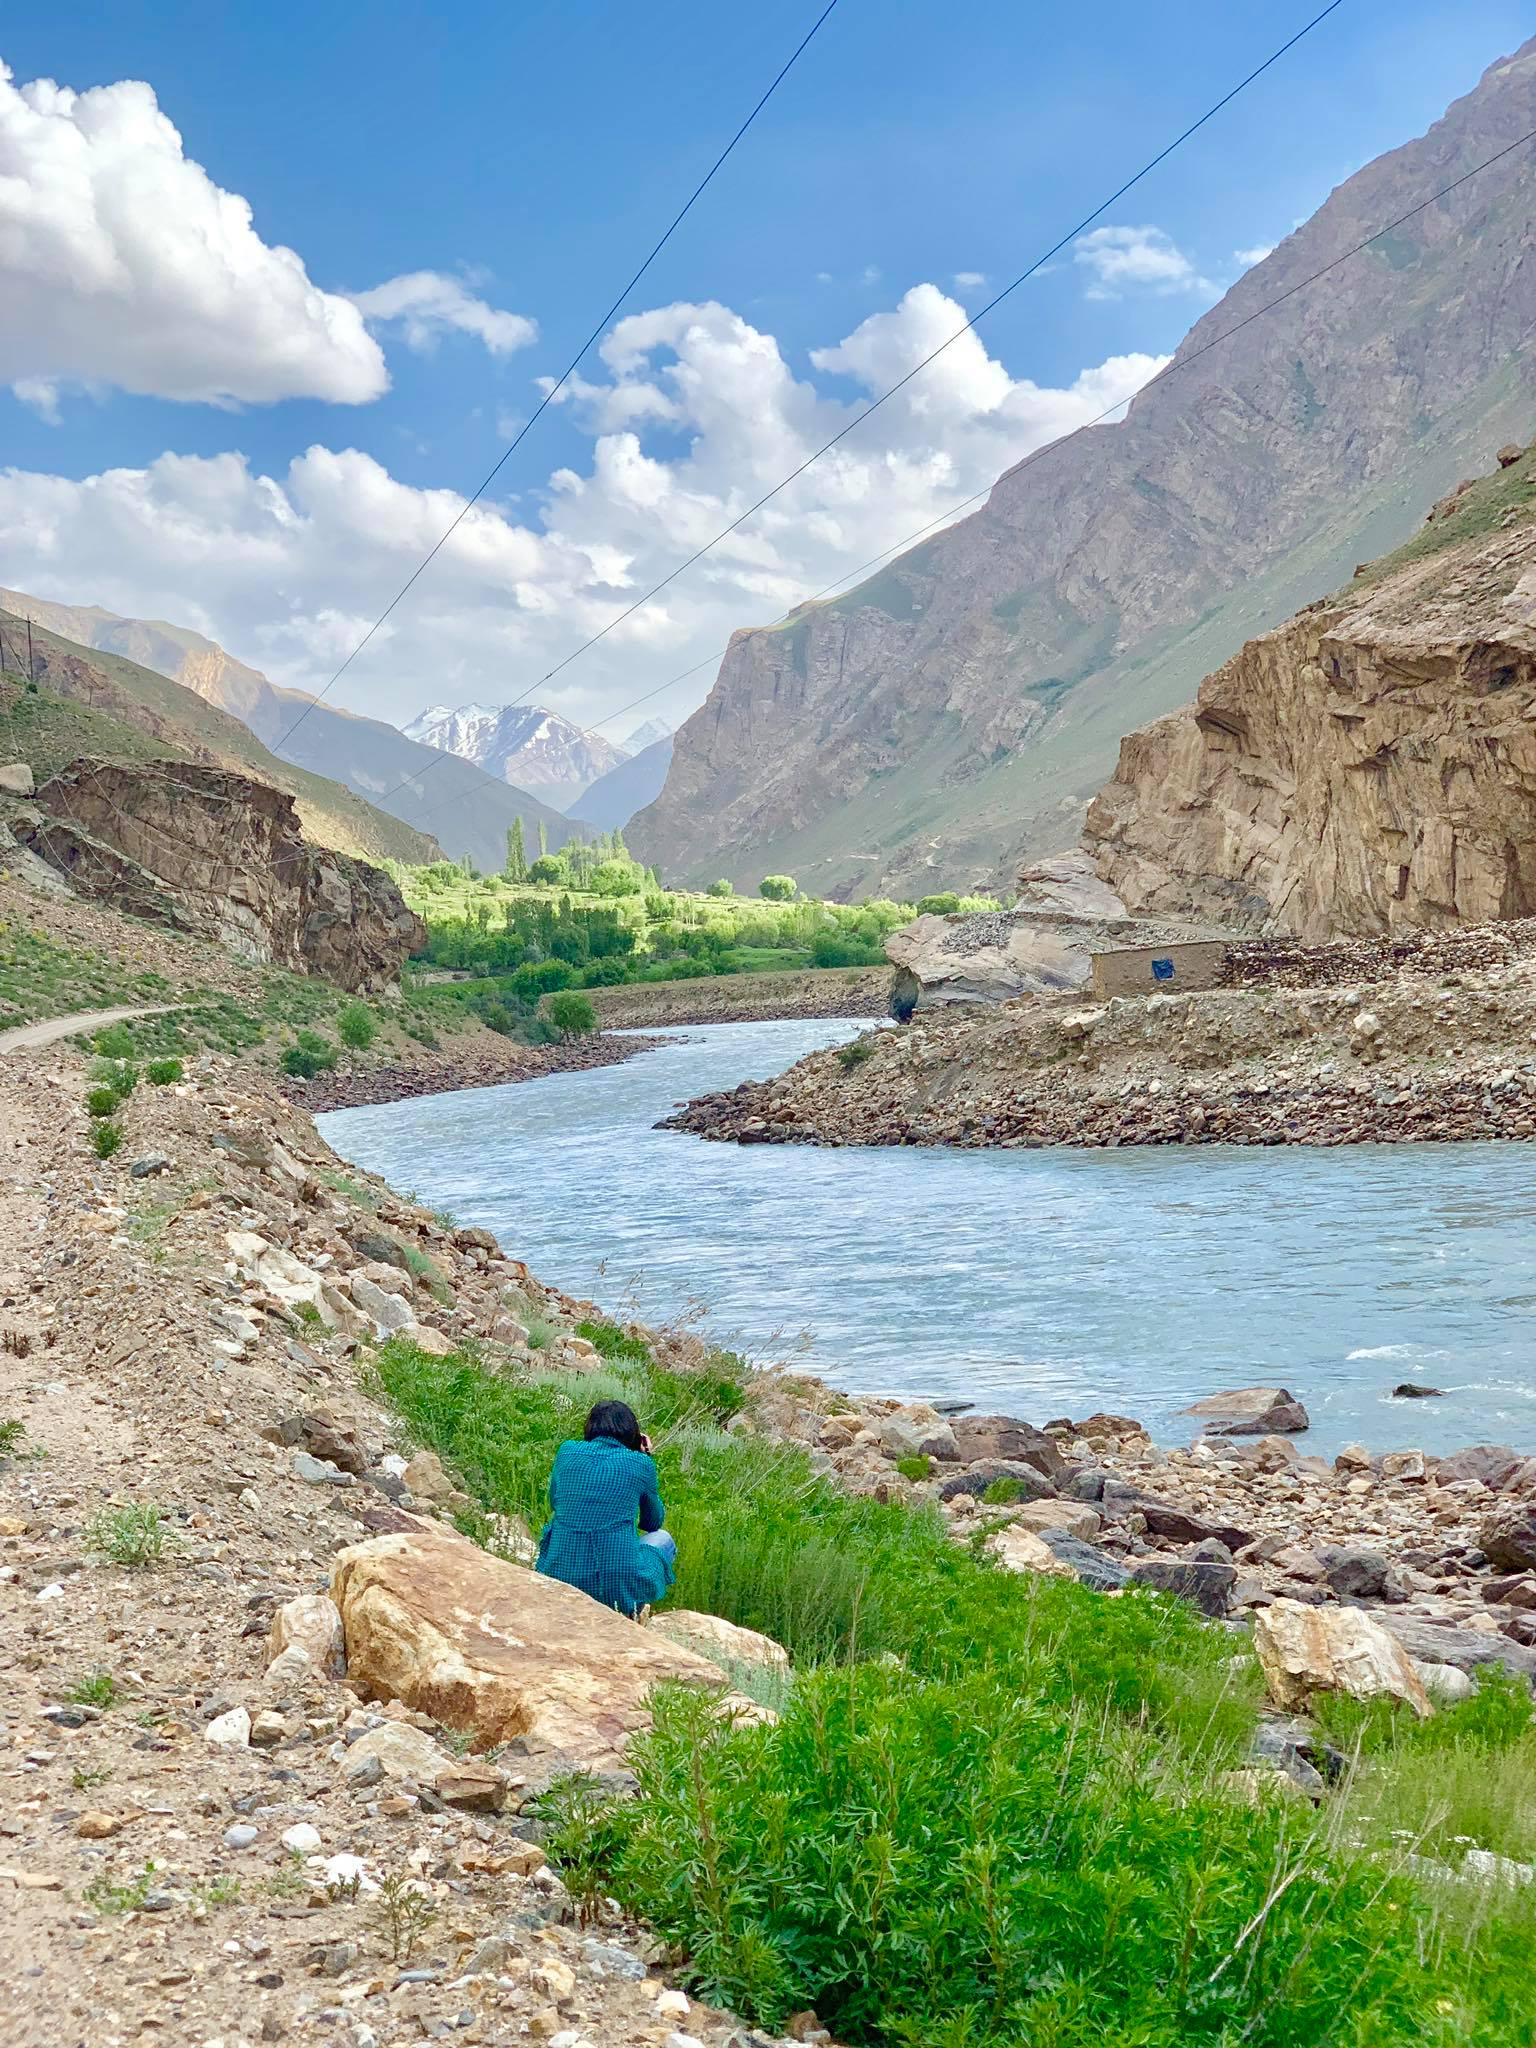 Kach Solo Travels in 2019 Driving from Ishkashim to Wakhan Valley12.jpg